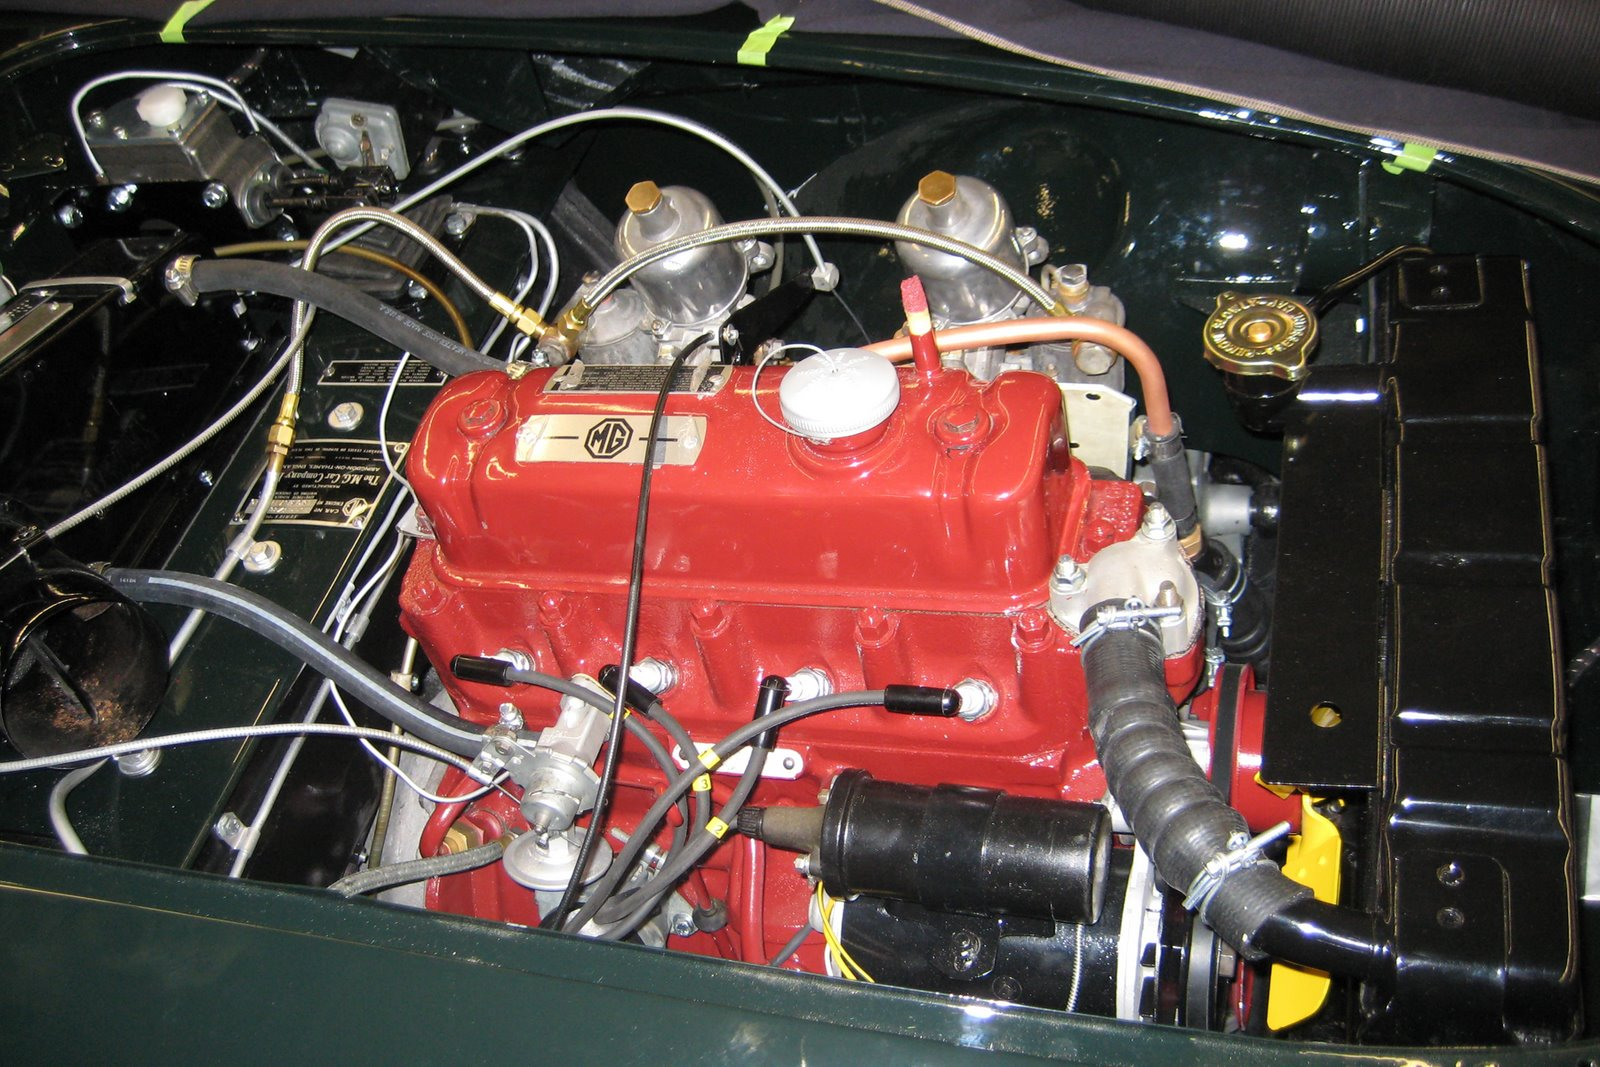 1957 MGA Engine